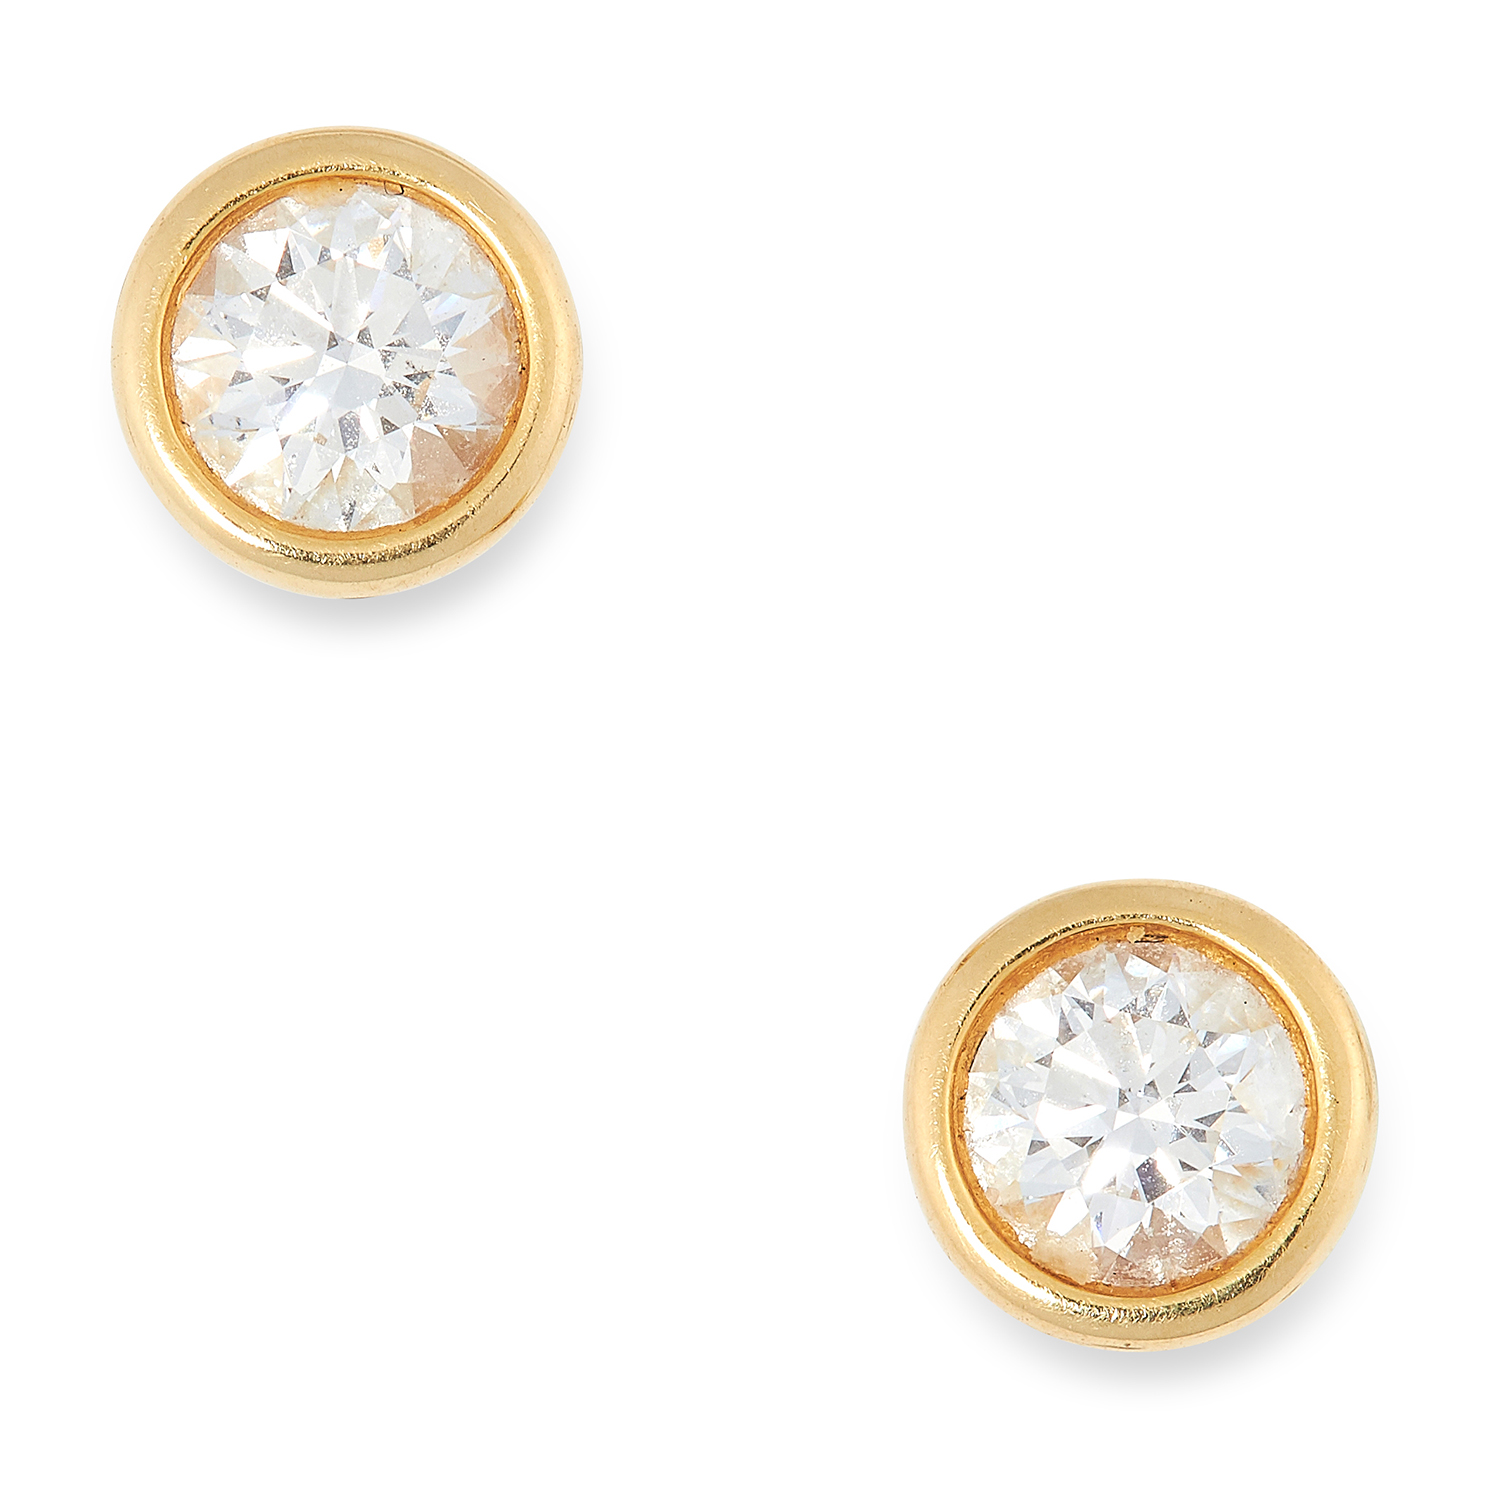 A PAIR OF 0.85 CARAT DIAMONDS BY THE YARD STUD EARRINGS, ELSA PERETTI FOR TIFFANY & CO set with